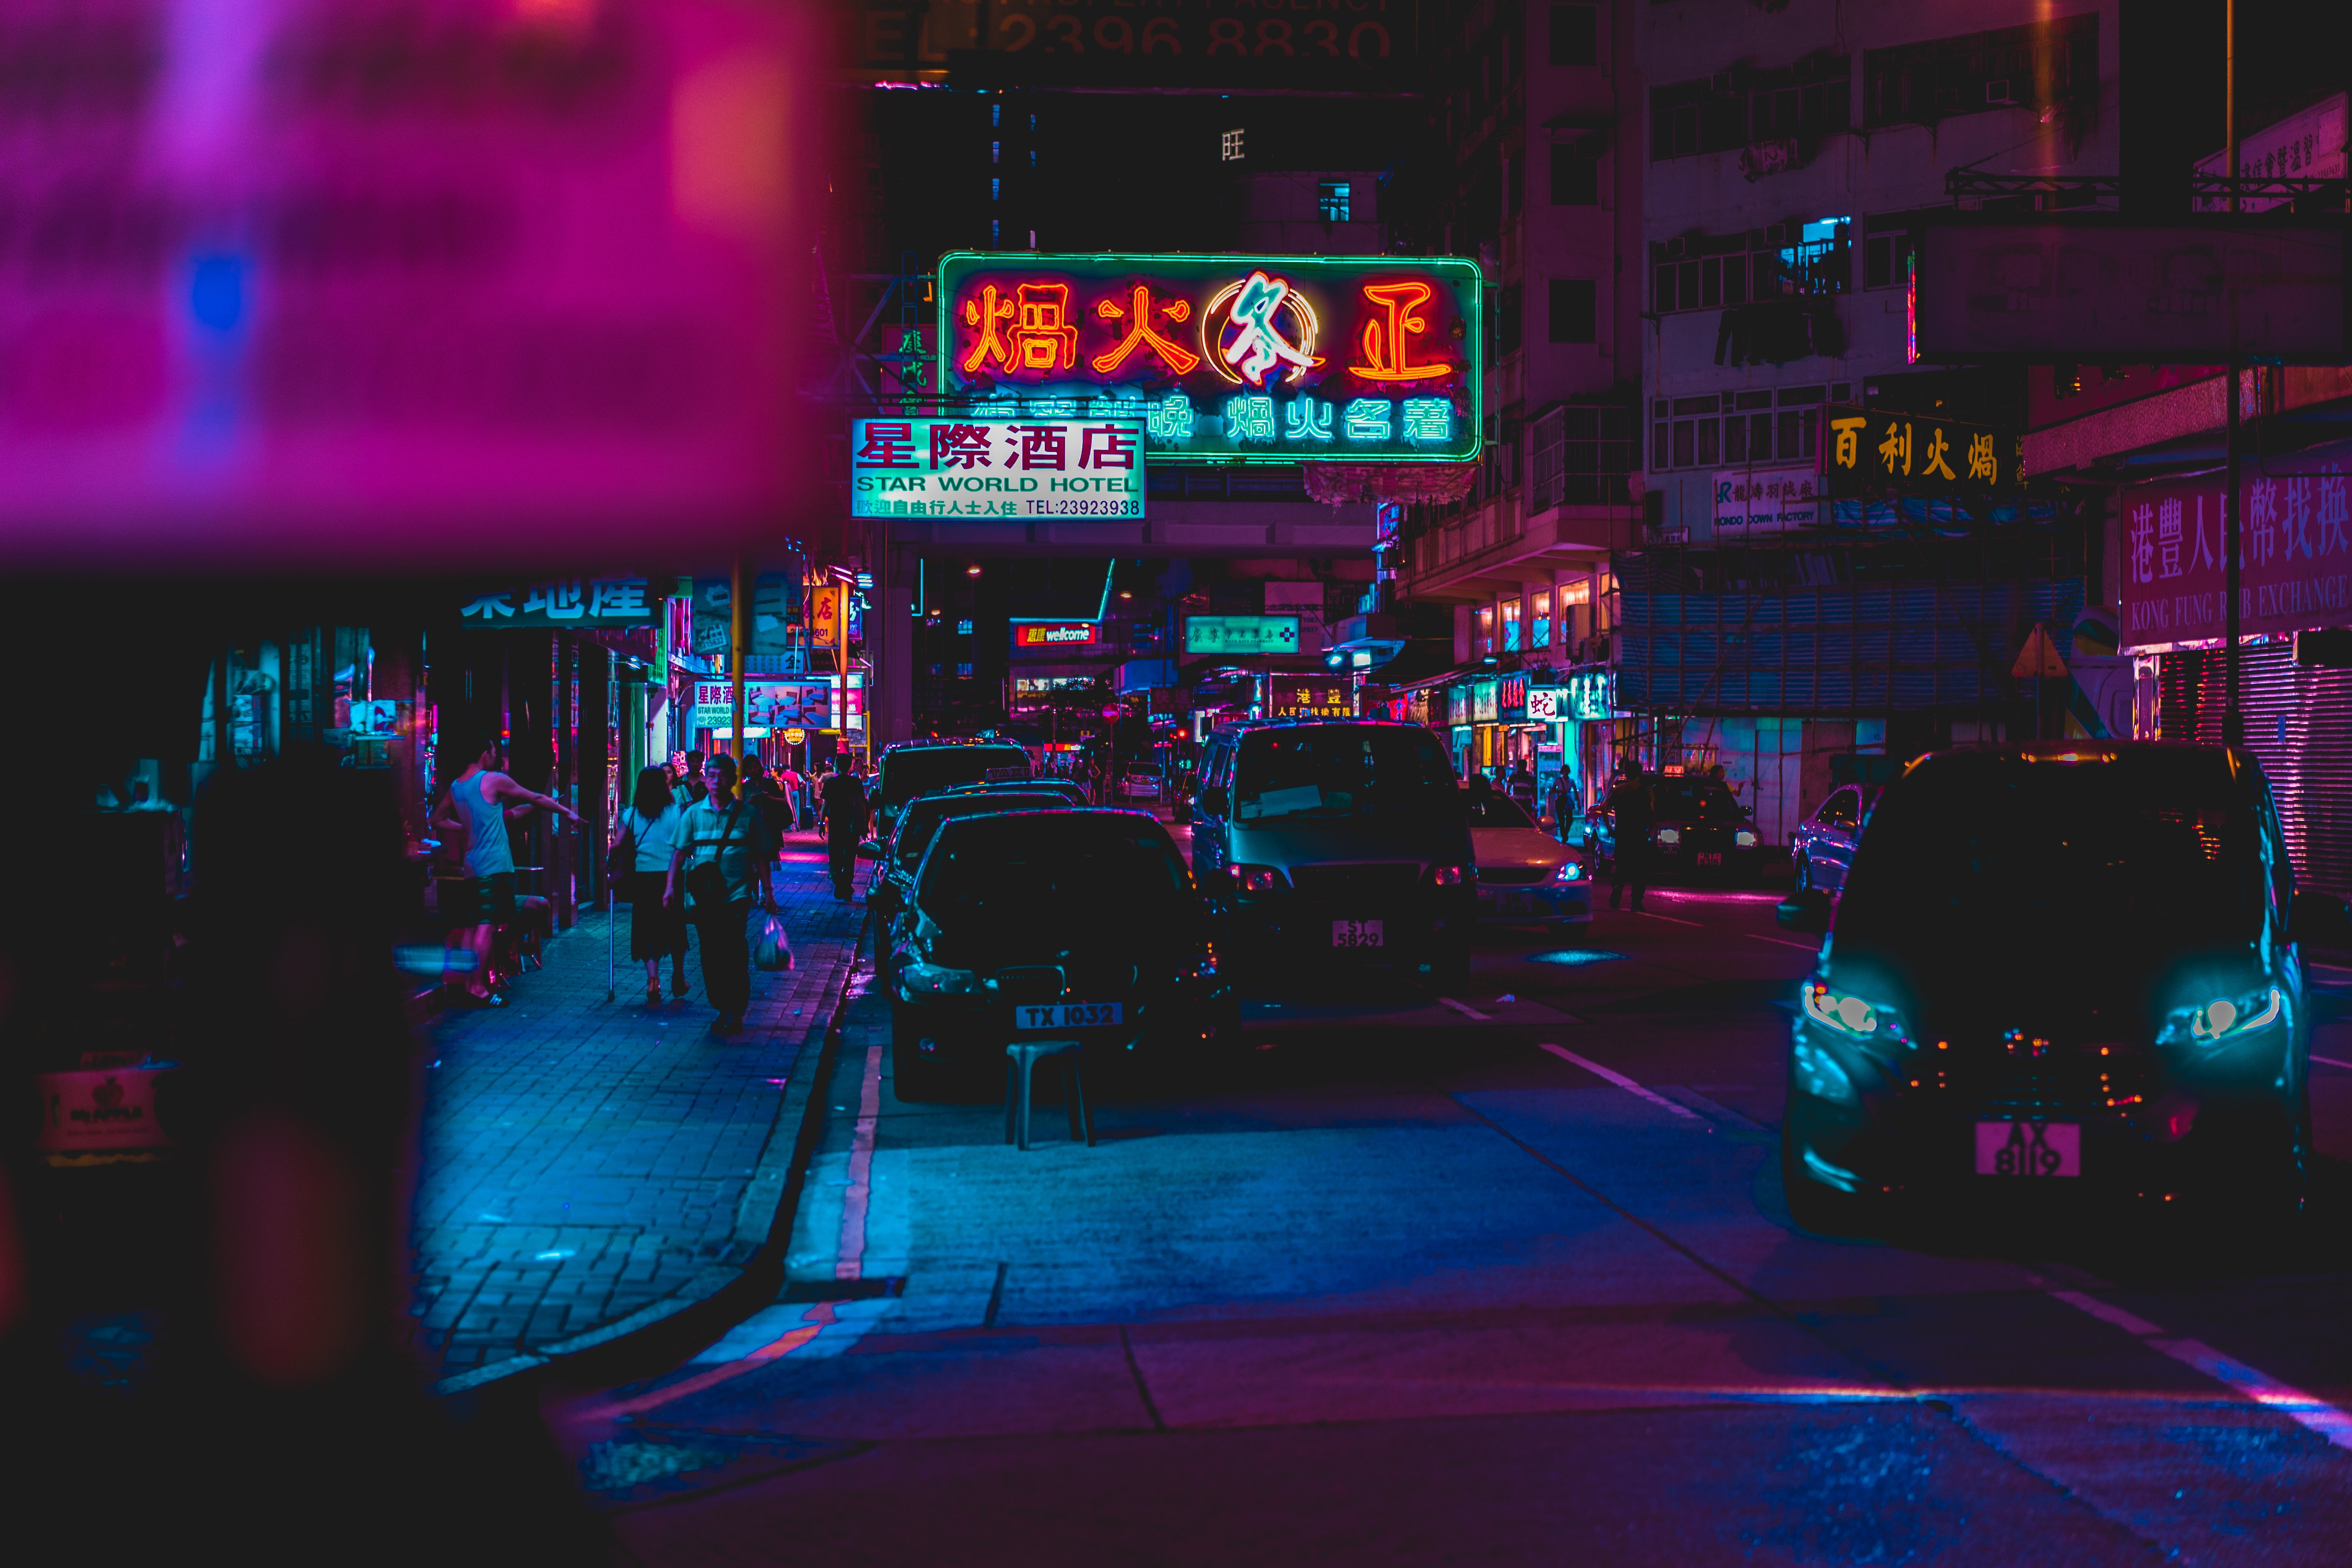 Hong Kong Night Street 4K Wallpaper